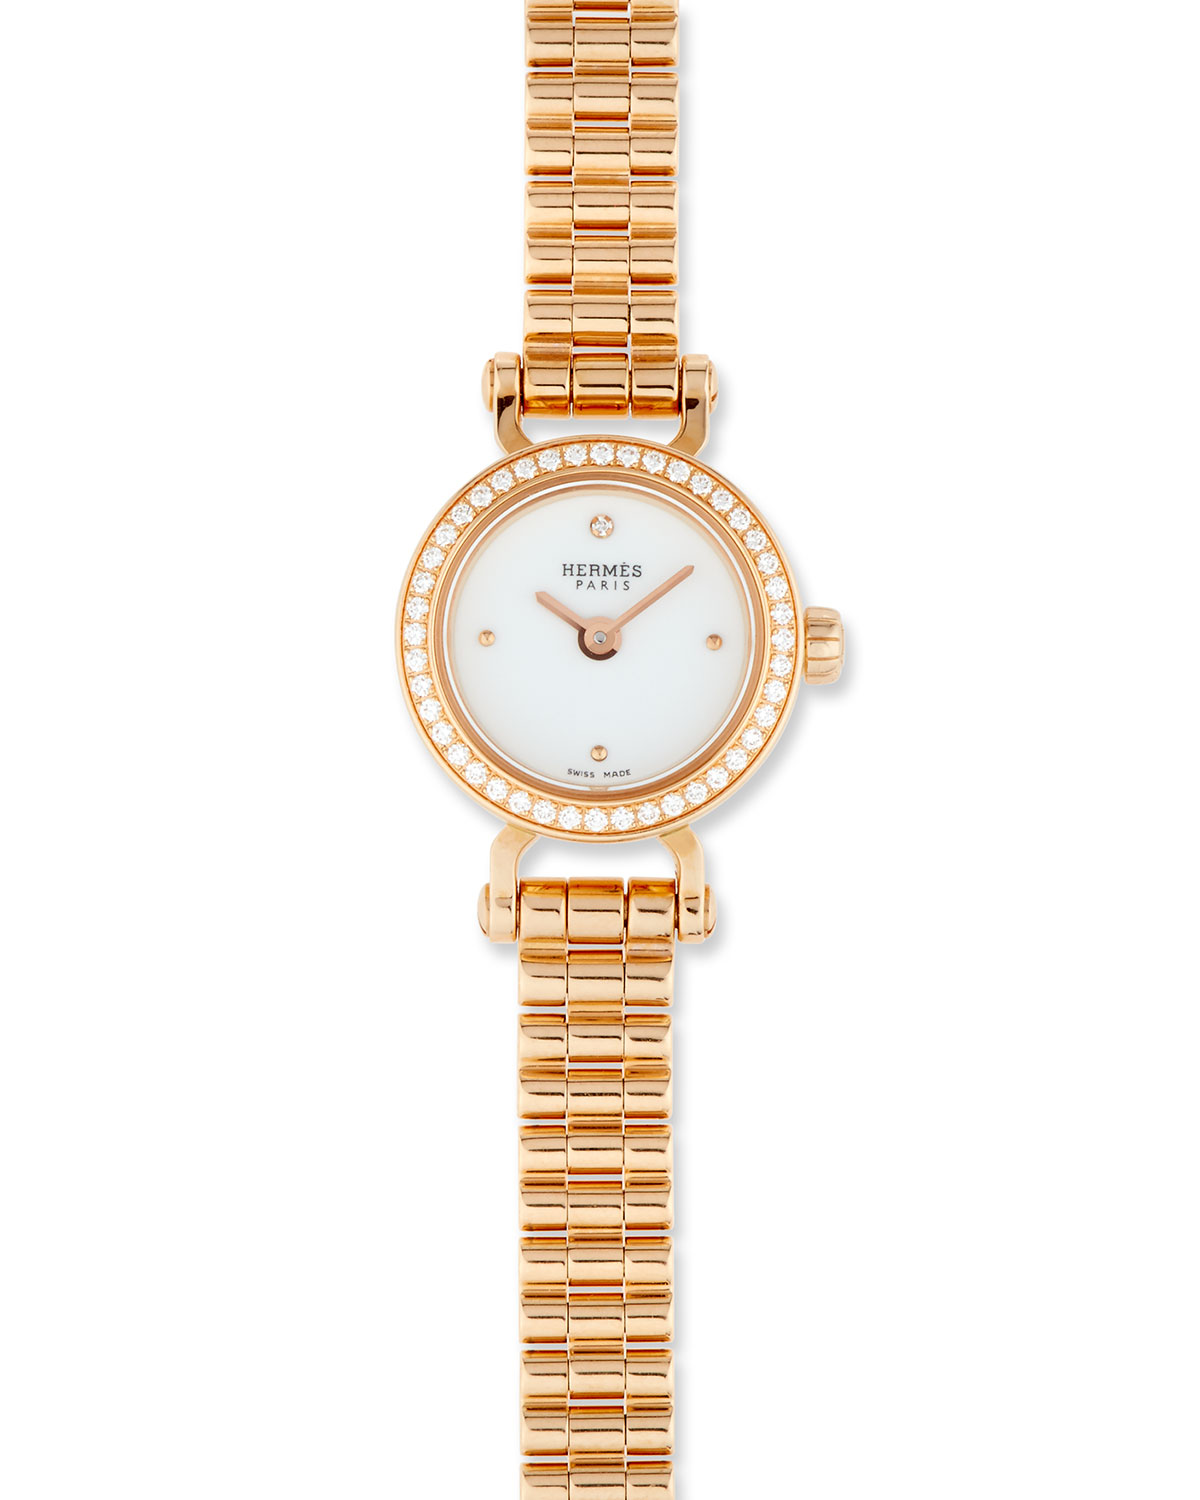 Hermès Fauborg TPM Watch with Diamonds in 18K Rose Gold